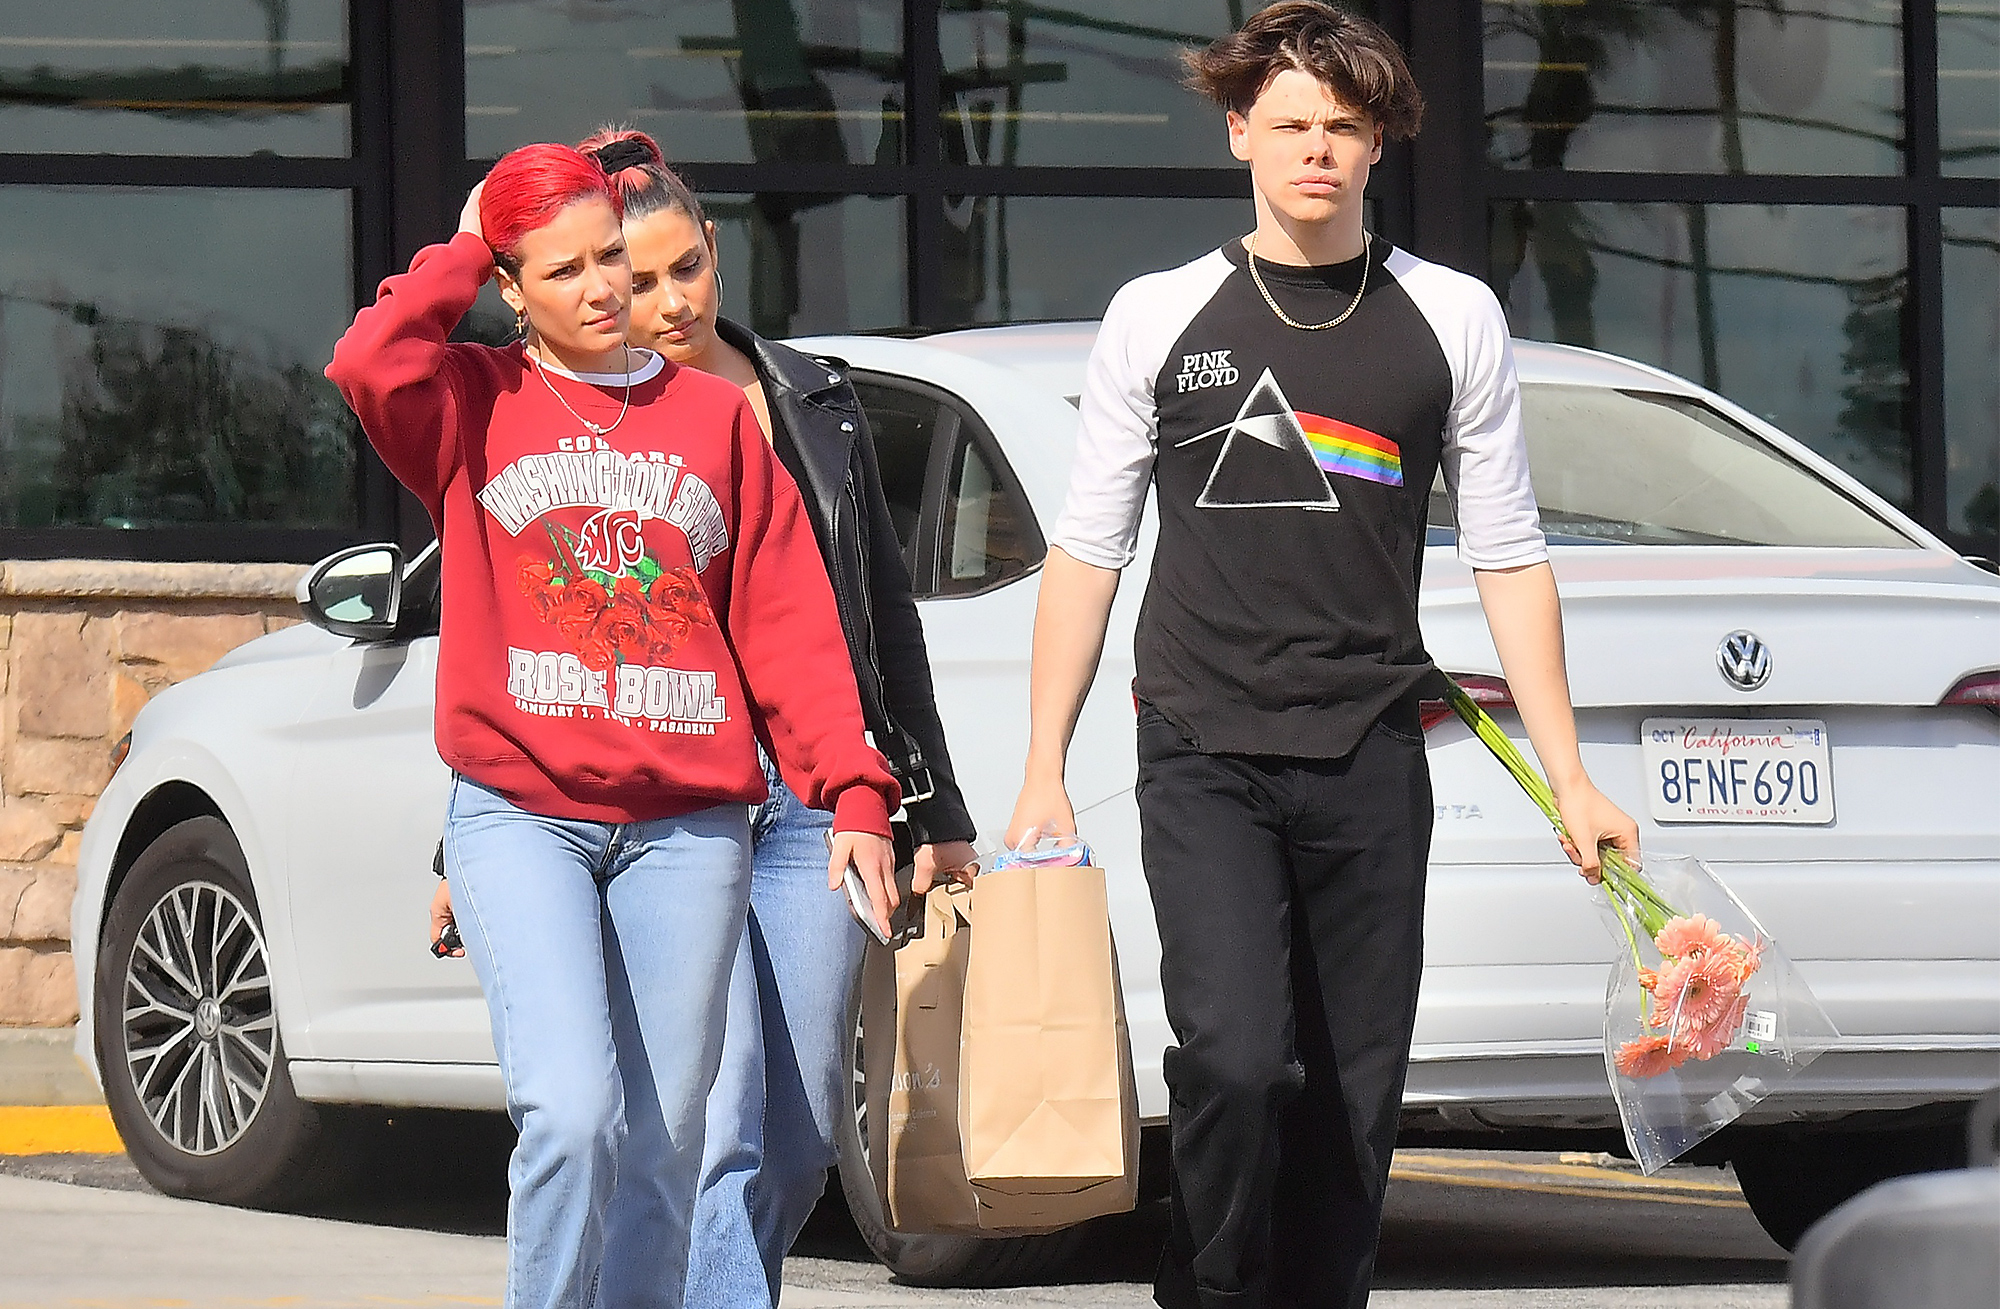 EXCLUSIVE: Halsey and her boyfriend Yungblud show off their domestic side as they head out on a grocery run